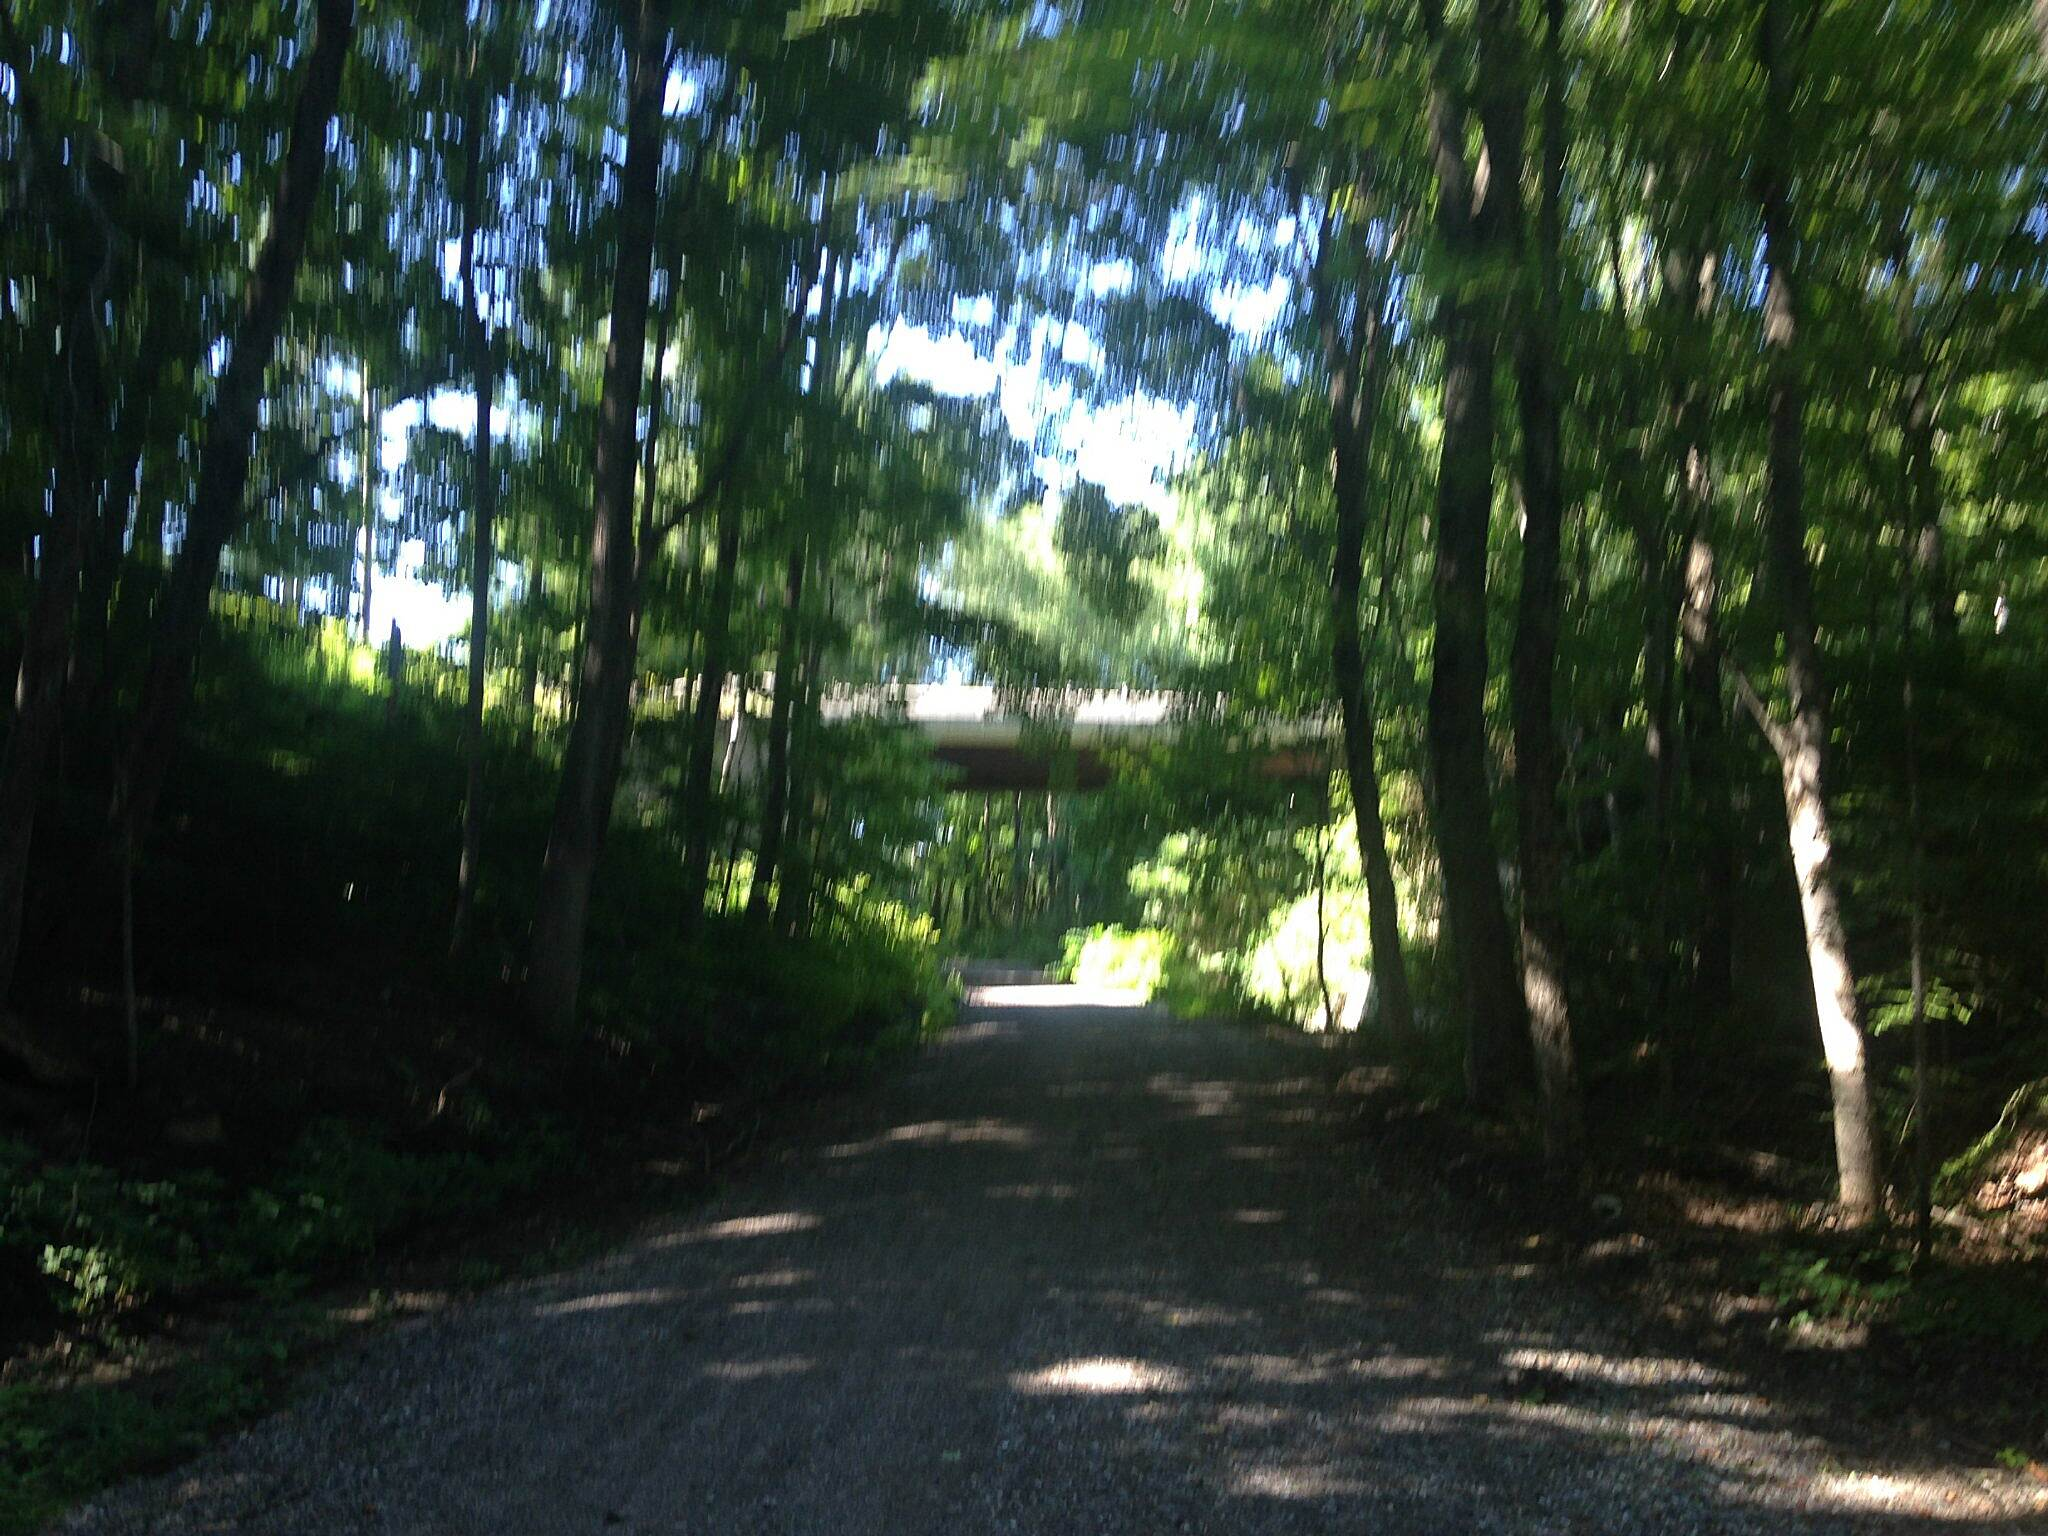 Air Line State Park Trail Route 44 bridge Pomfret